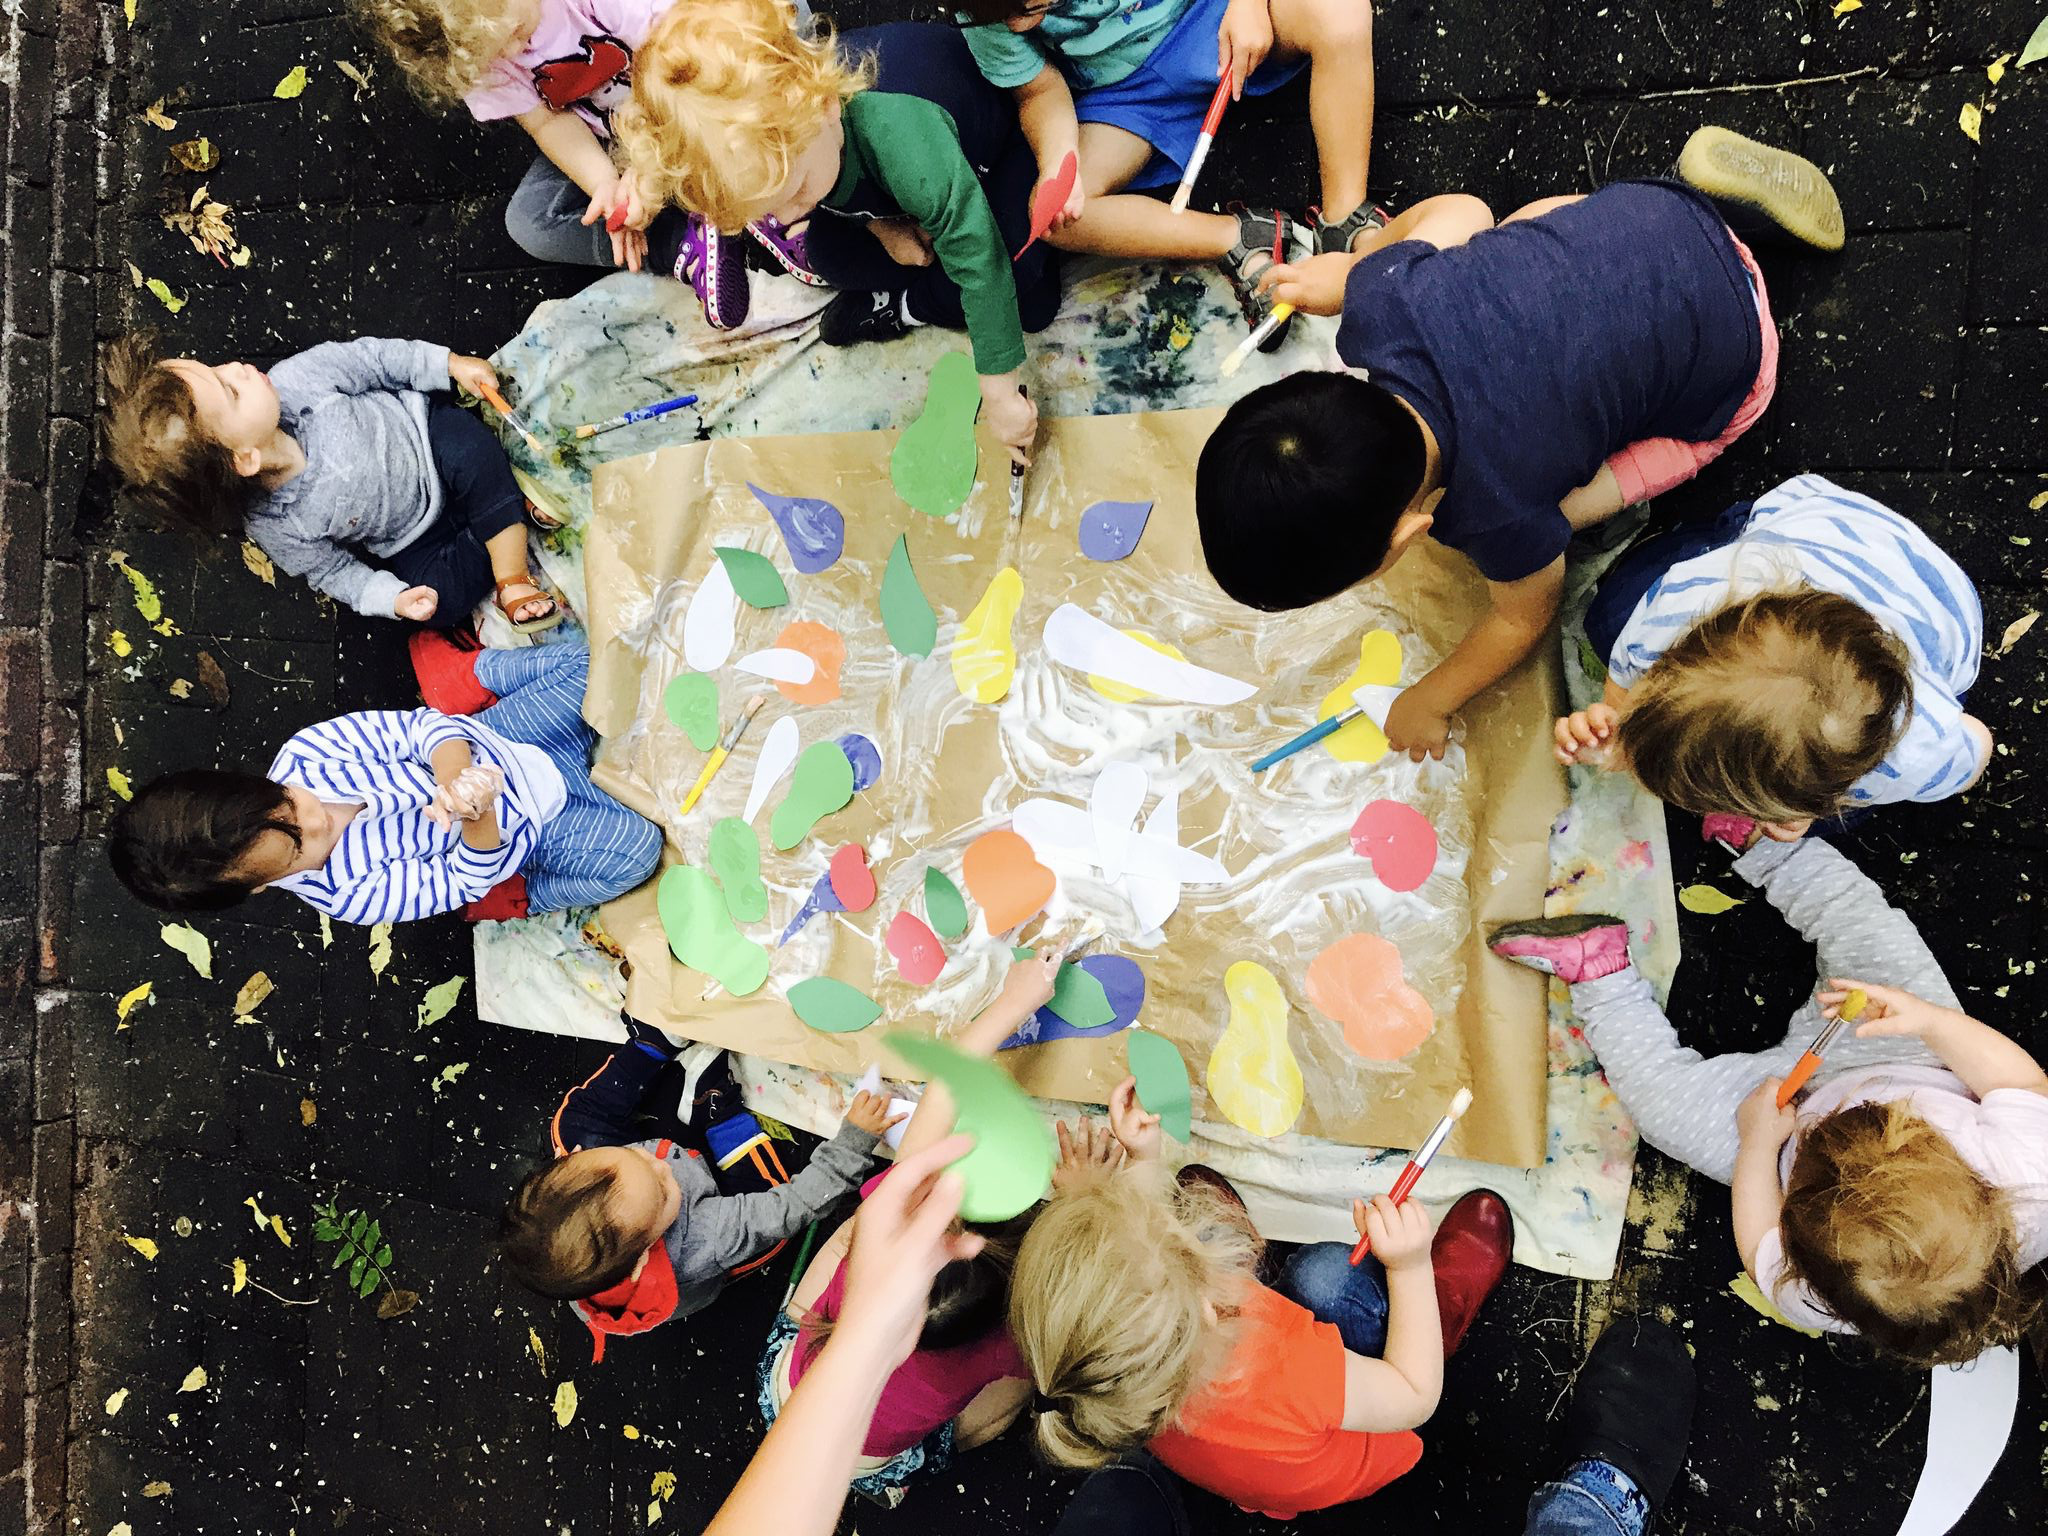 Outdoor Time - Not only is outdoor time great for gross motor skills and learning, it is also a great time to make art!